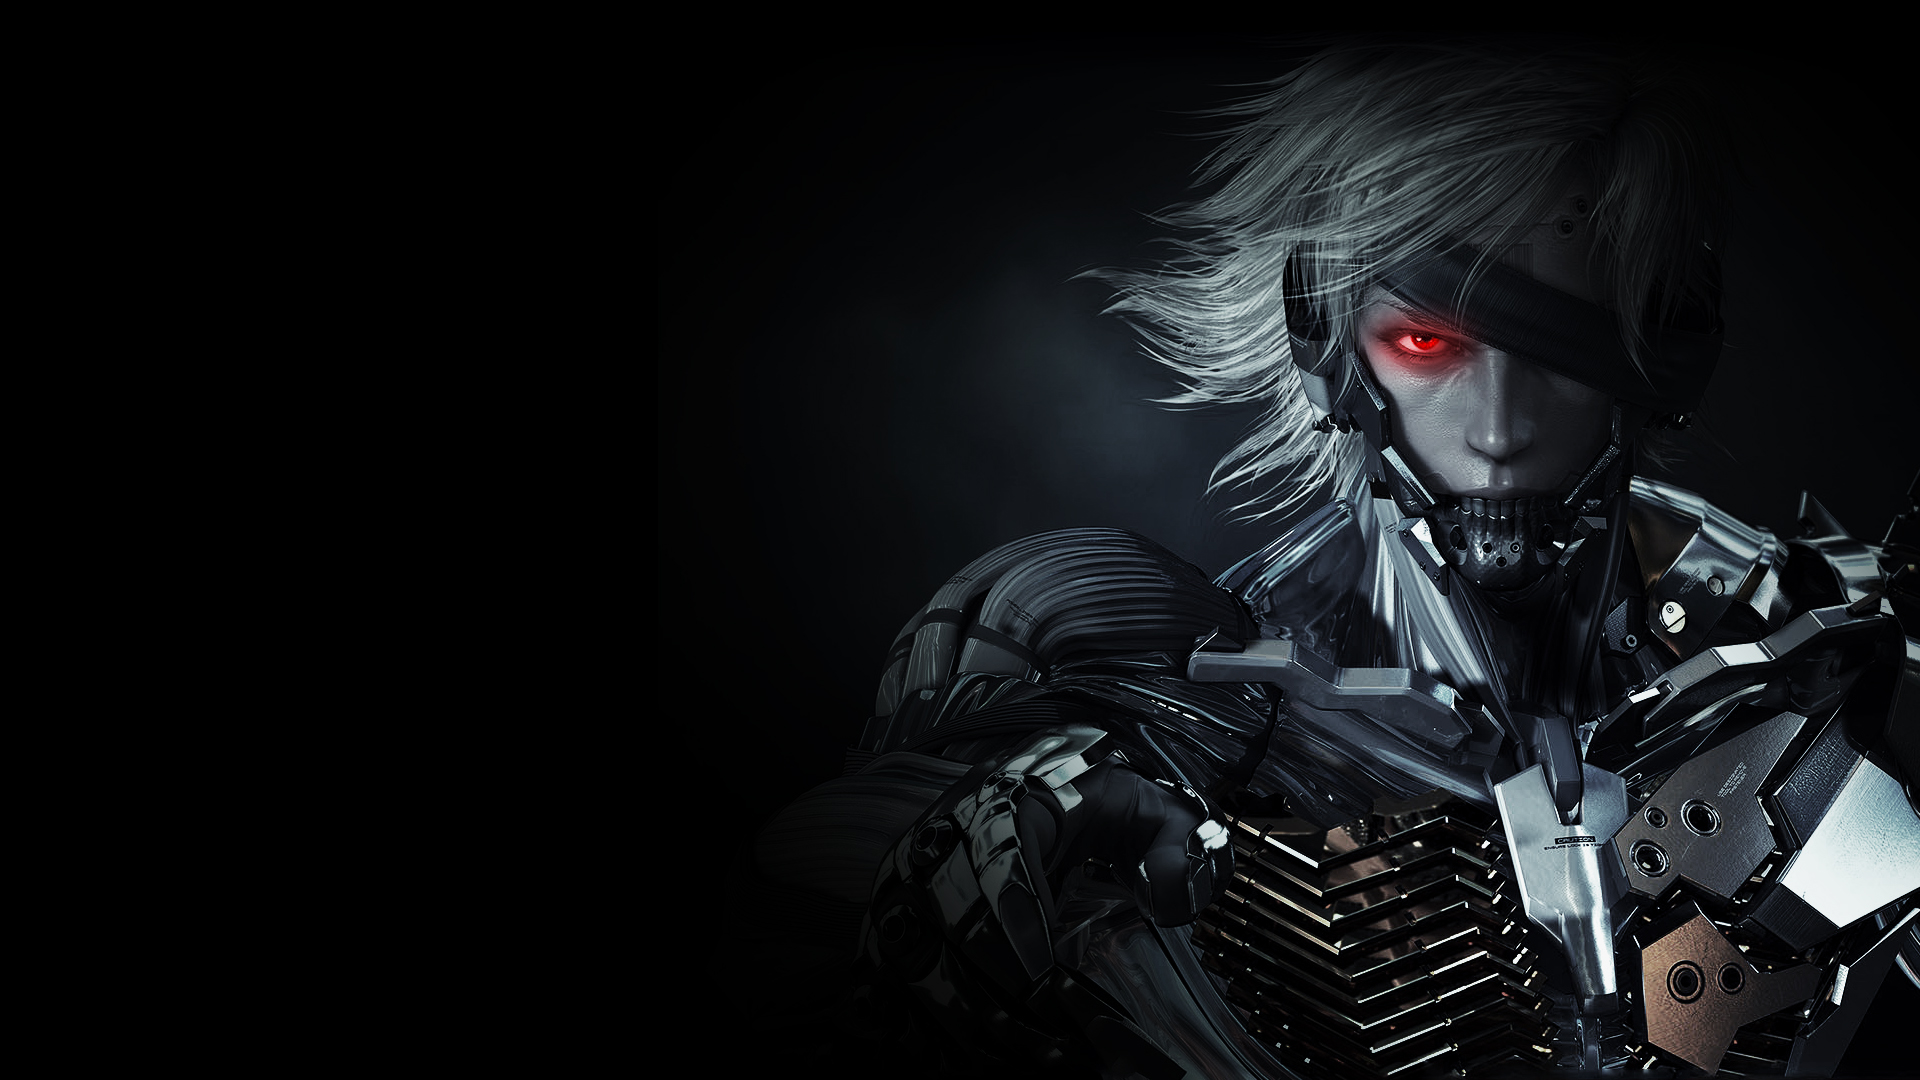 Raiden MGS Rising HD Wallpaper by LiquidRaiden